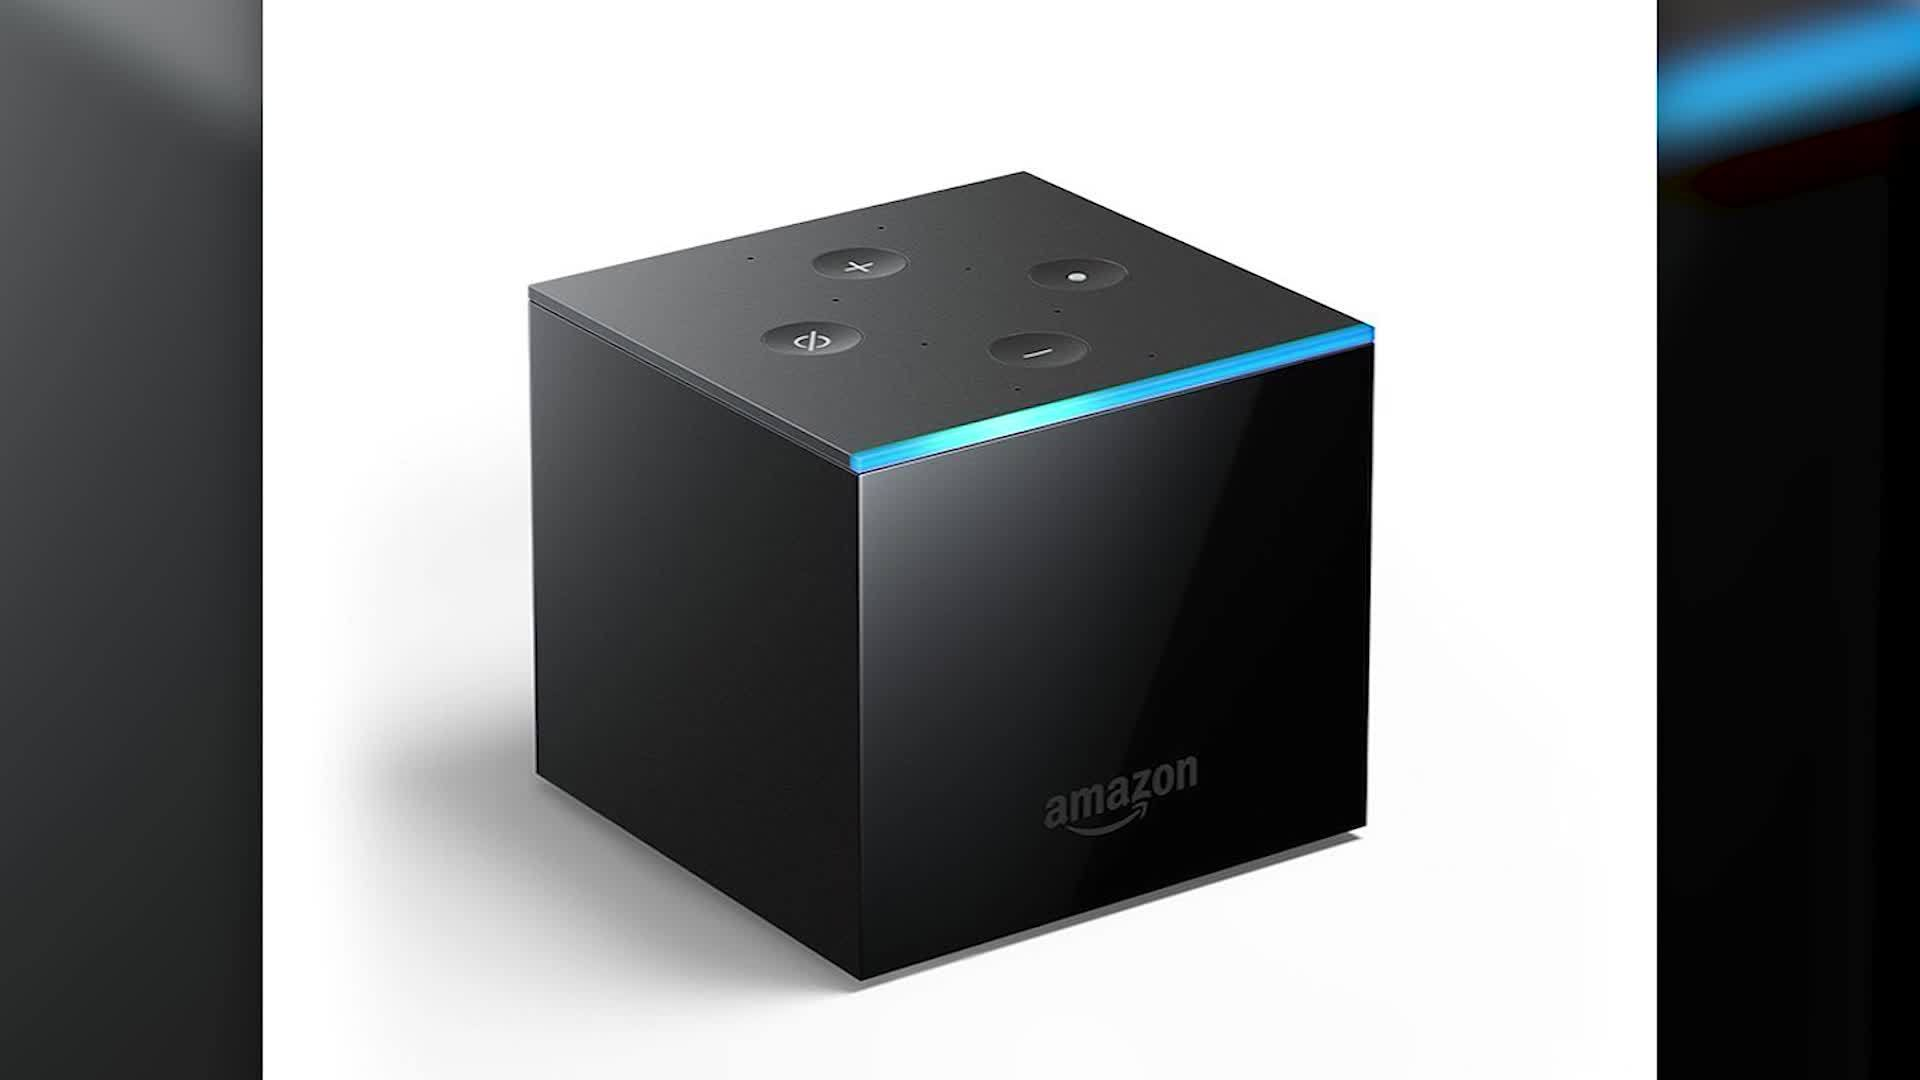 Amazon unveils nearly hands-free streaming TV device